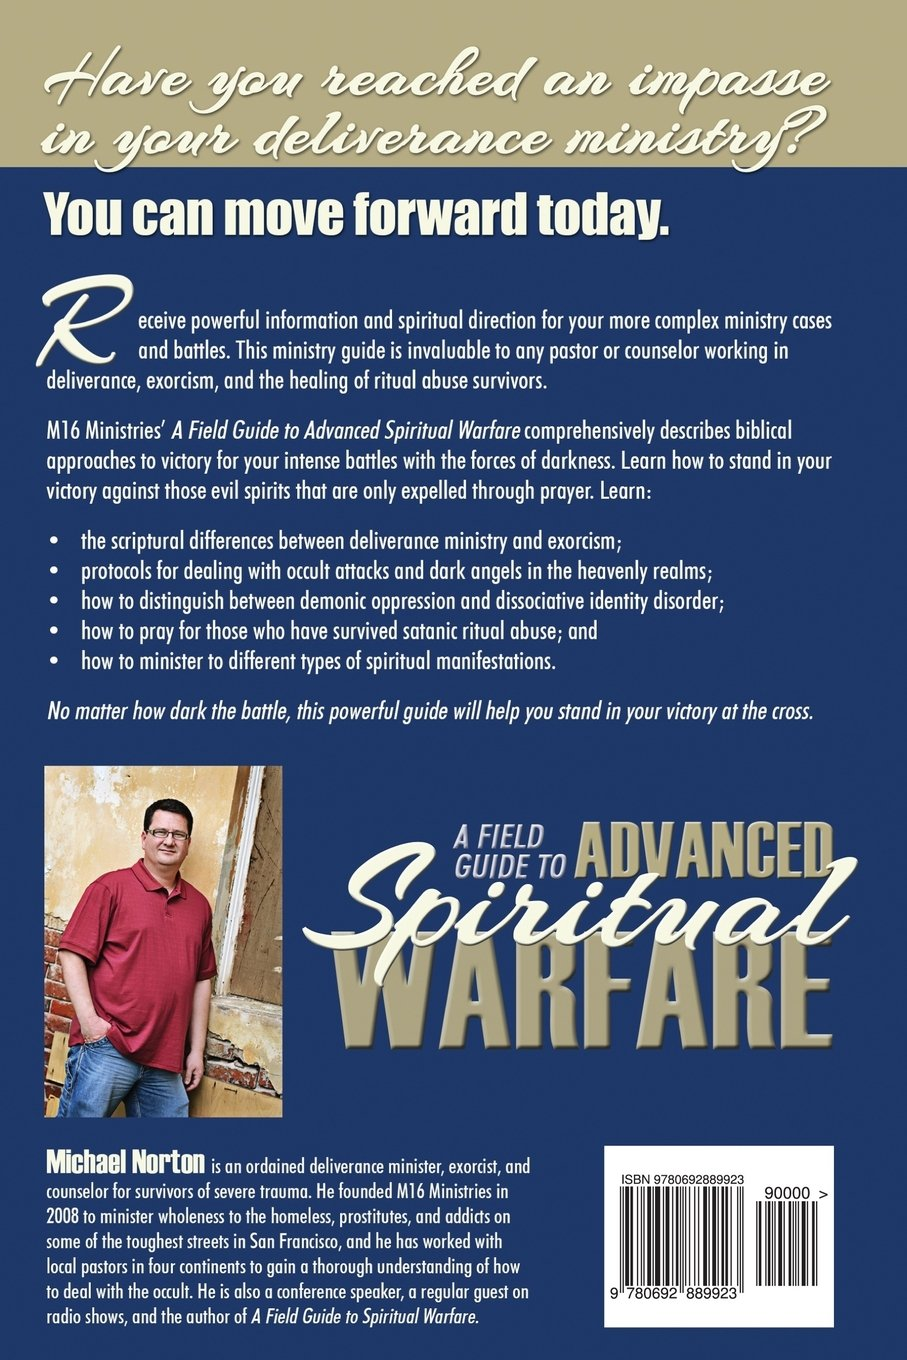 A Field Guide to Advanced Spiritual Warfare: Deliverance, Exorcism, and  Healing the Effects of Ritual Abuse (M16 Ministries A Field Guide Training  Series) ...